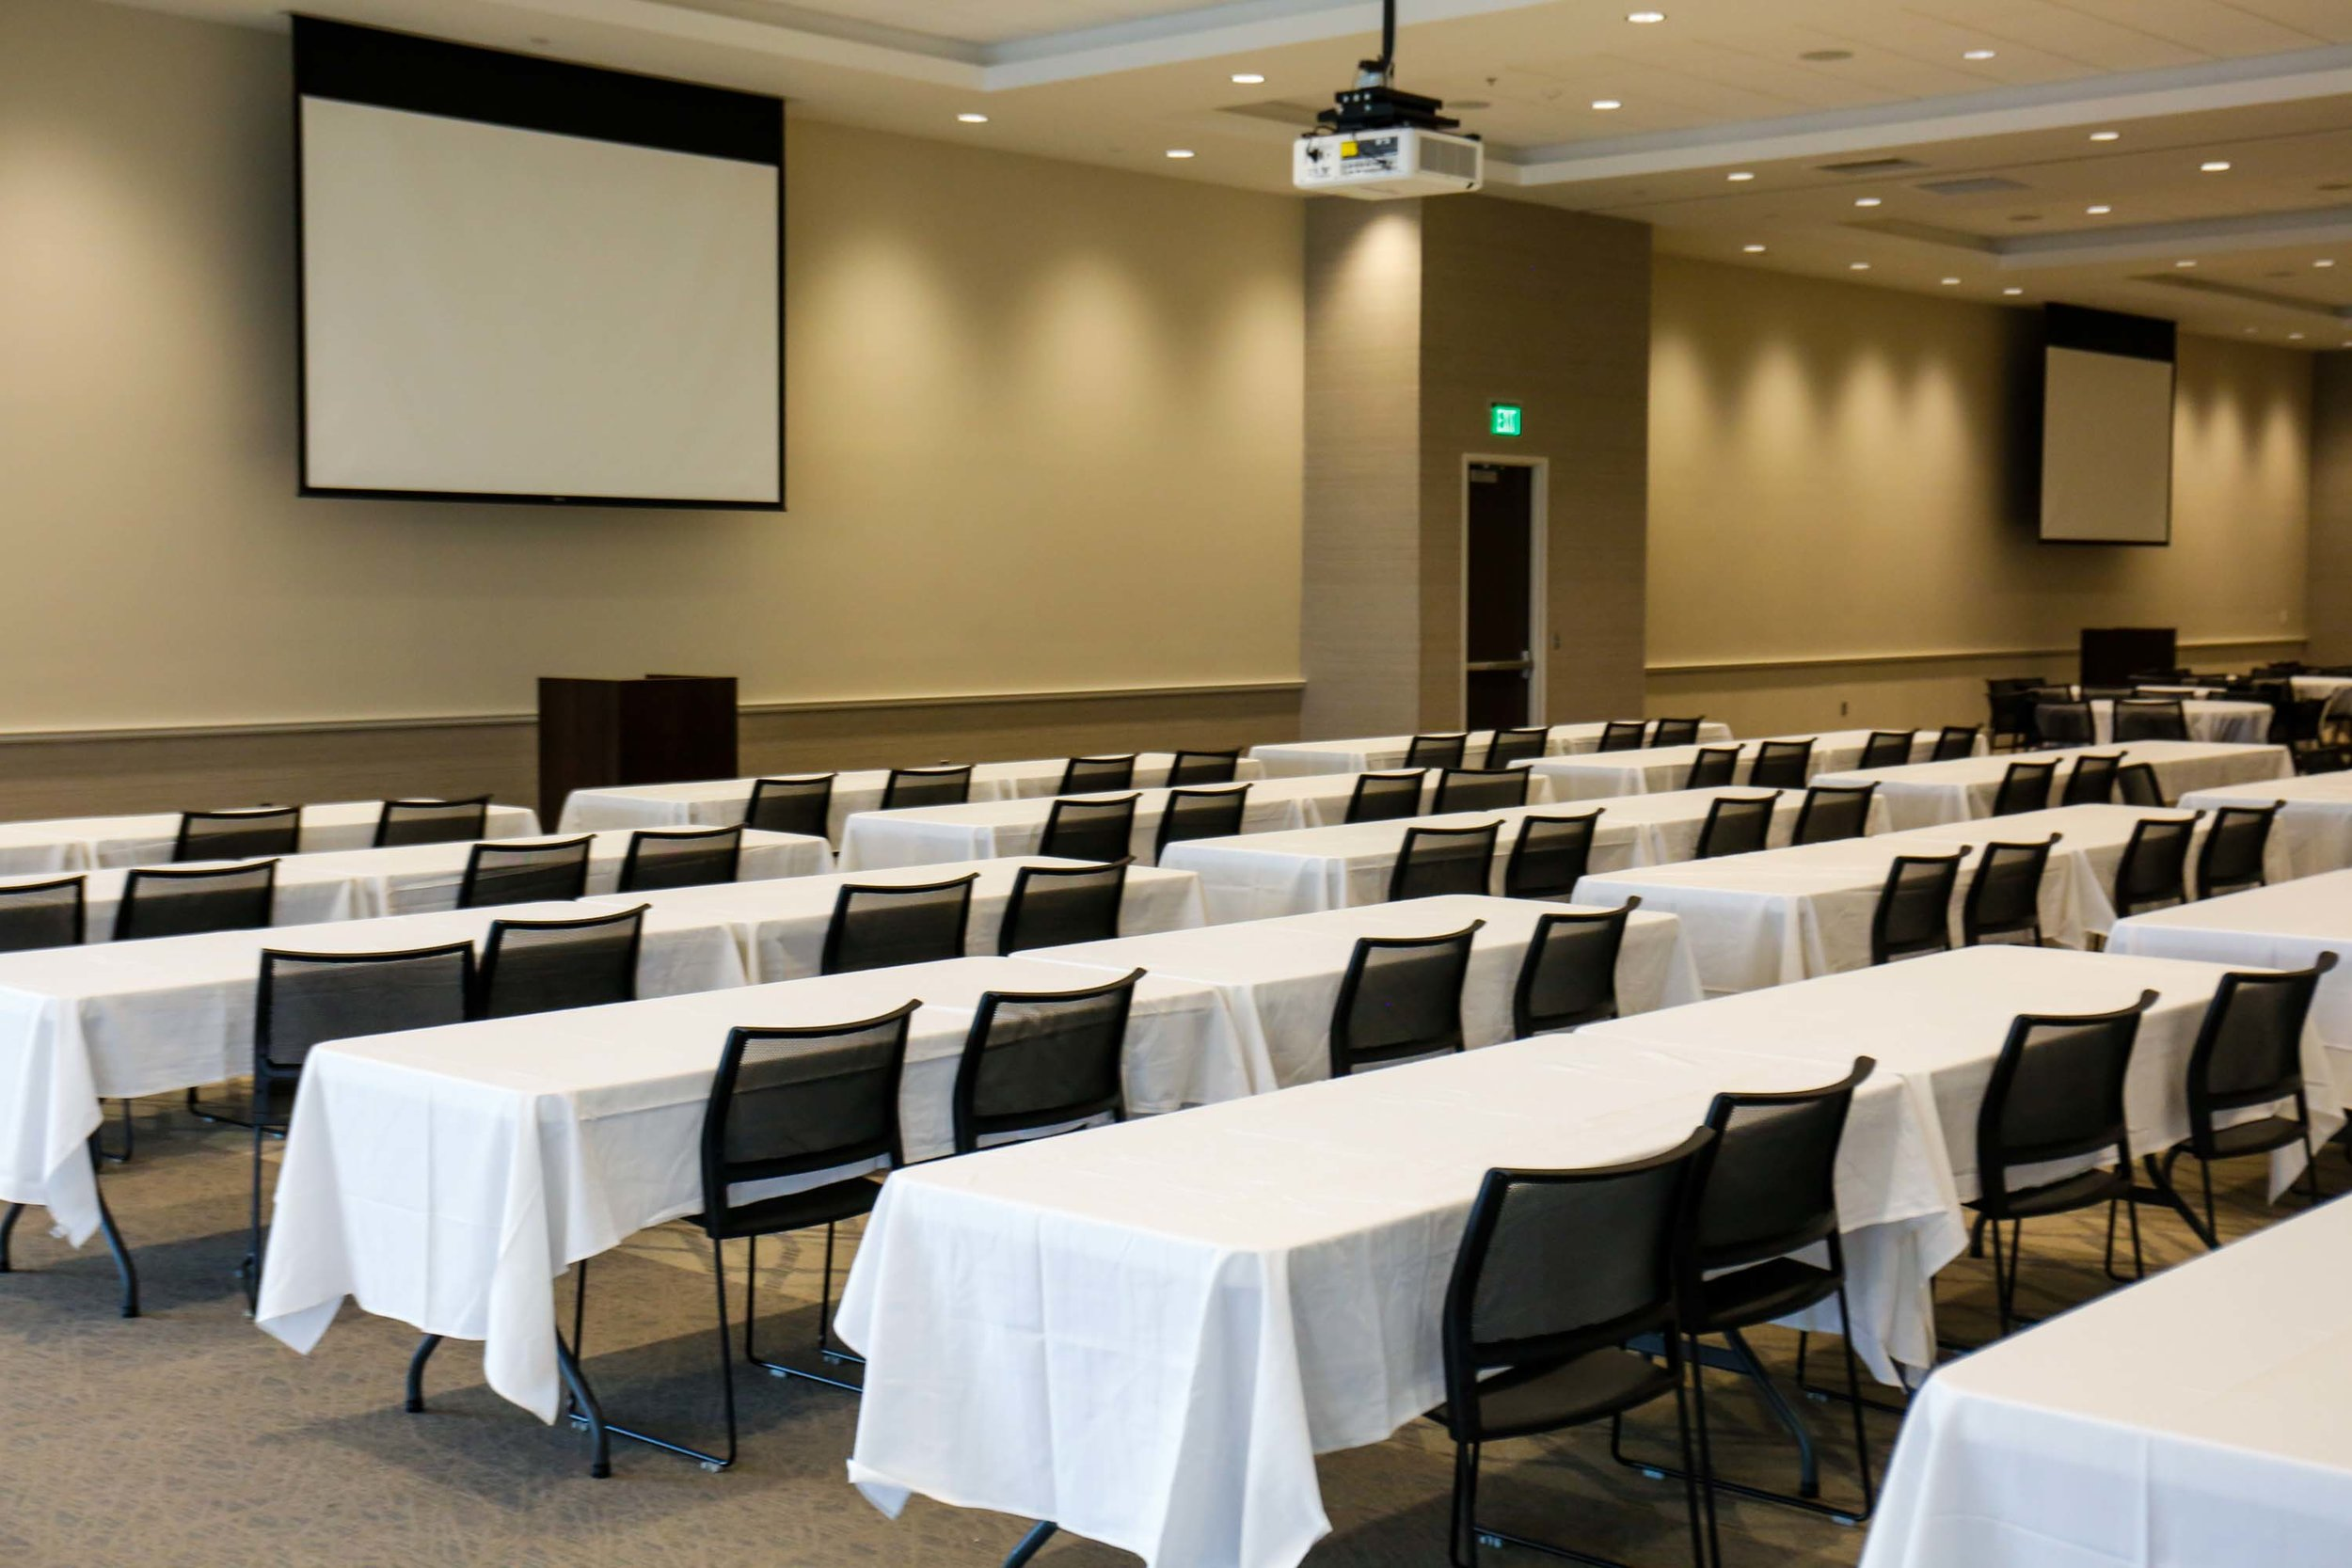 Meeting Room 2 - - 2,620 sq/ft- 20 tables 162 chairs- 36 tables 108 chairs